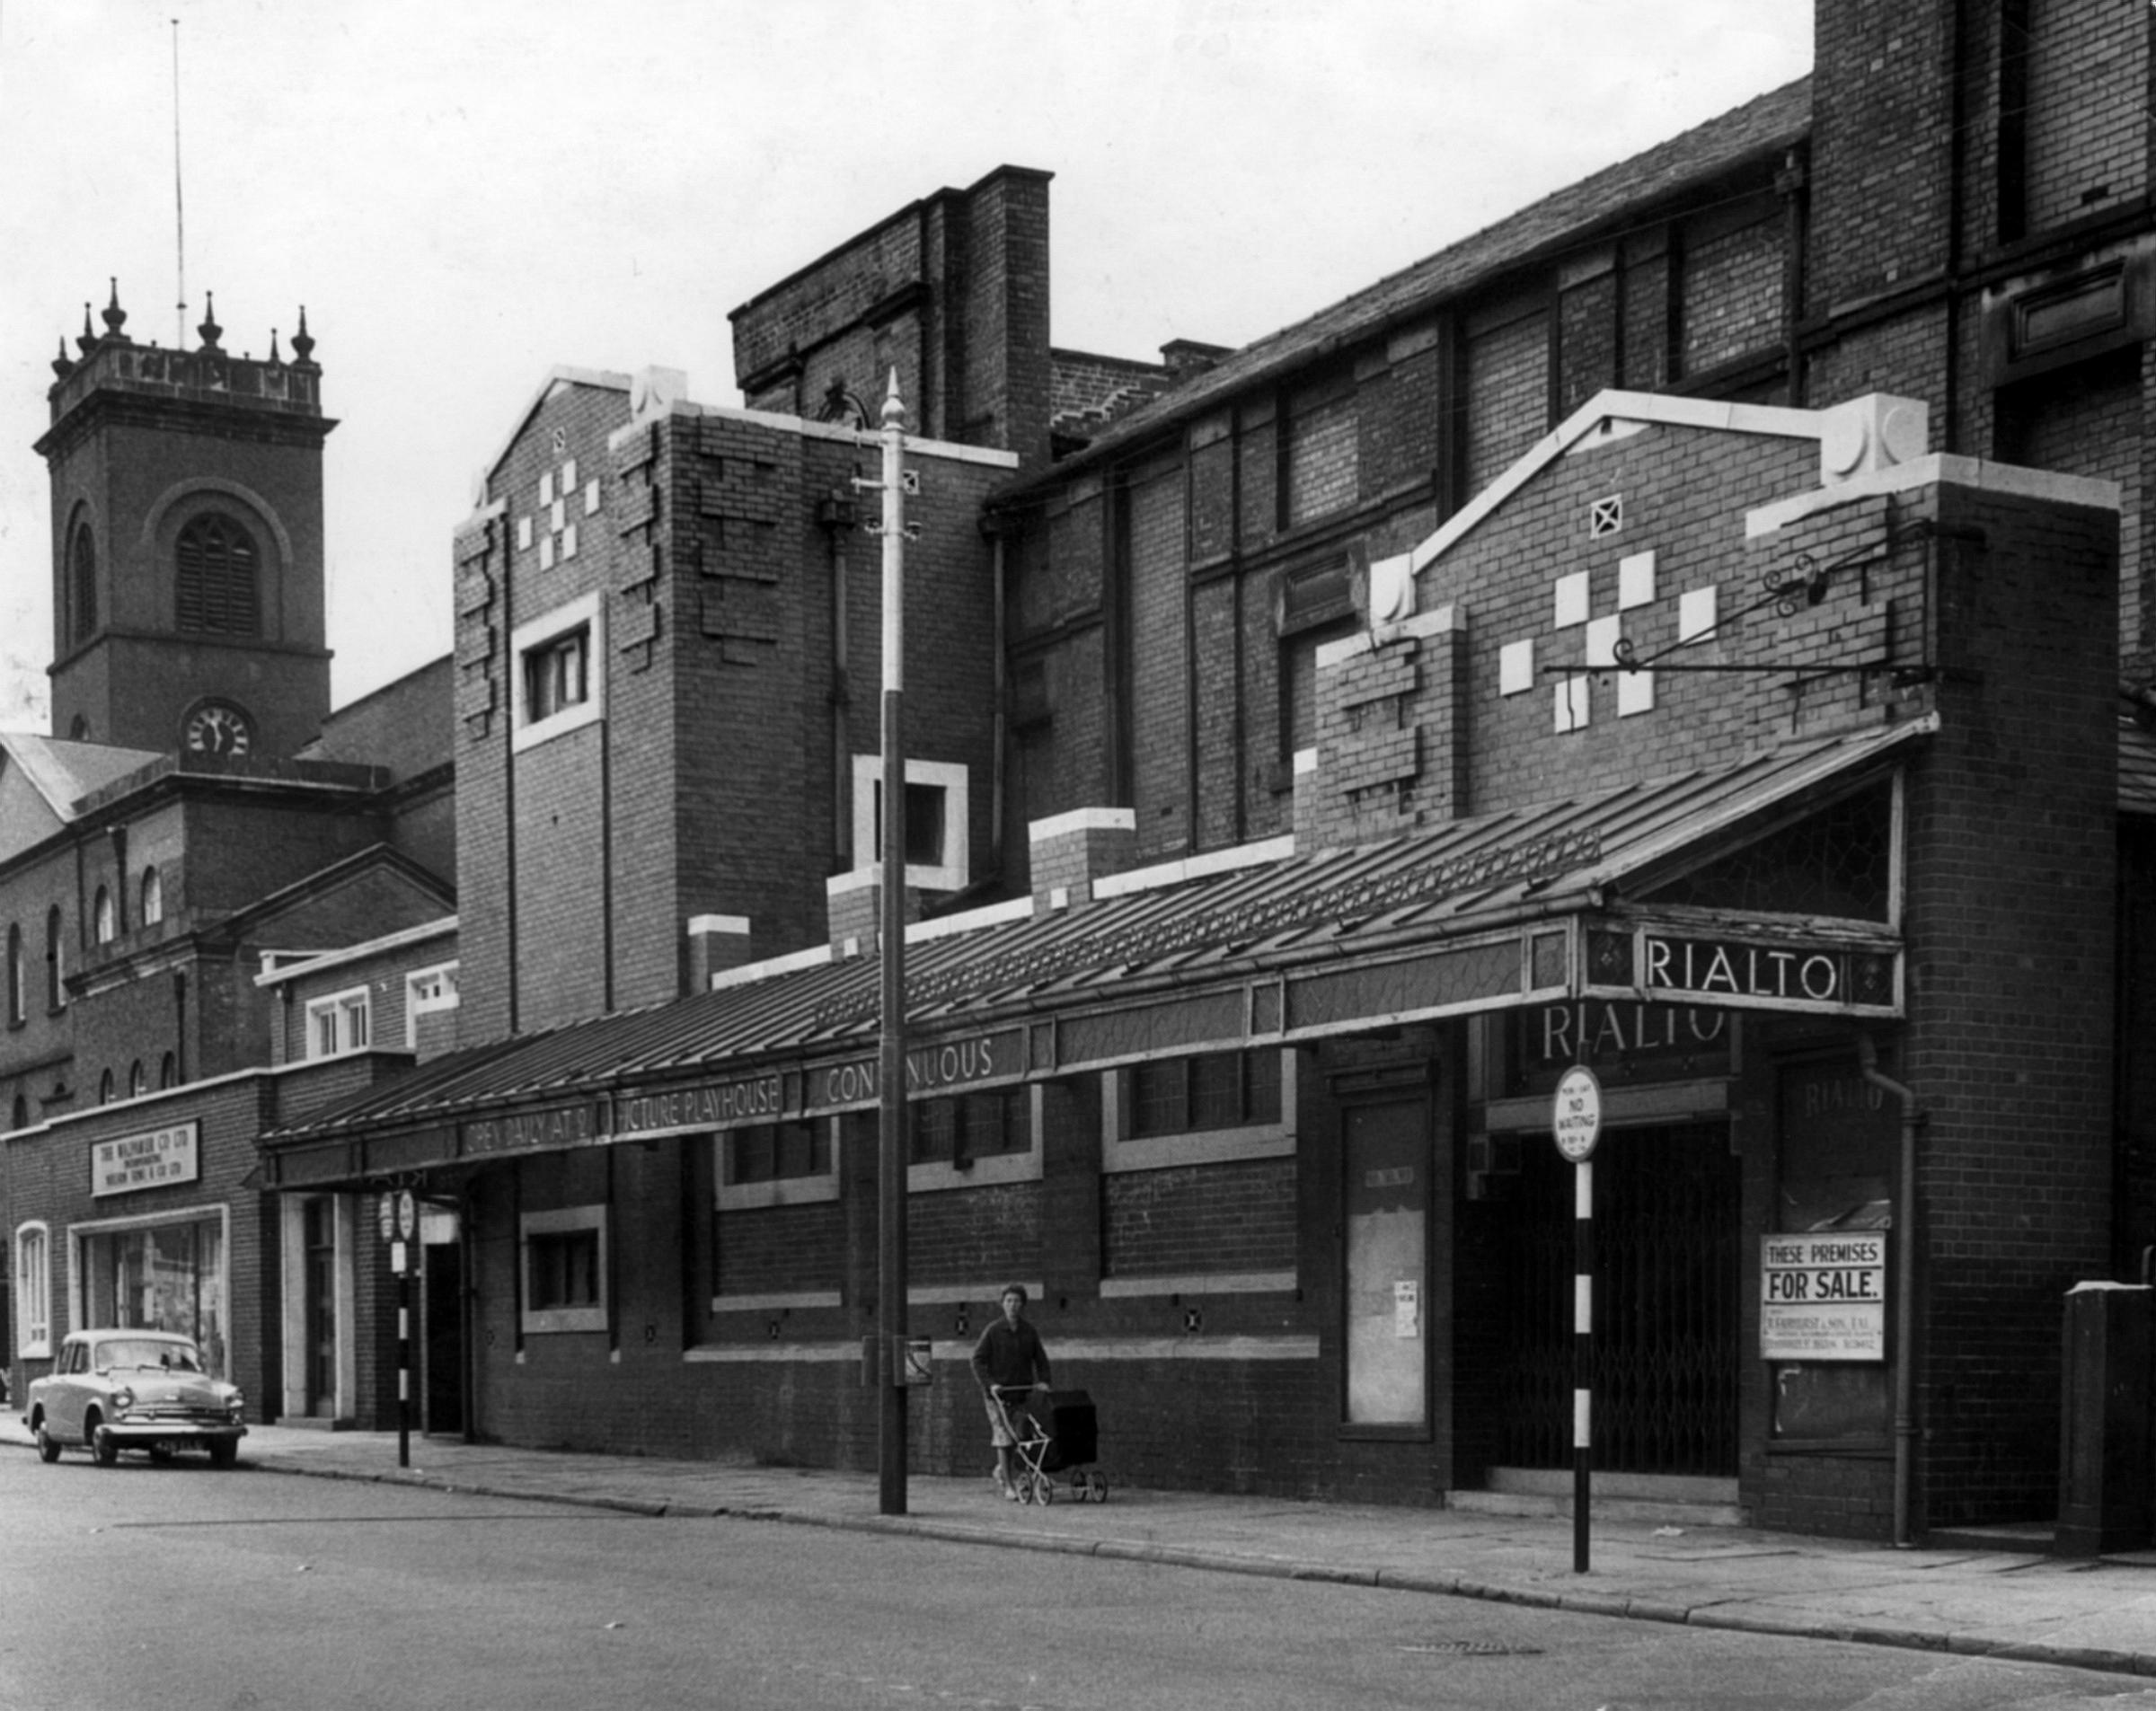 The Bolton News: The Rialto Picture Playhouse, in St George's Road, up for sale in 1962